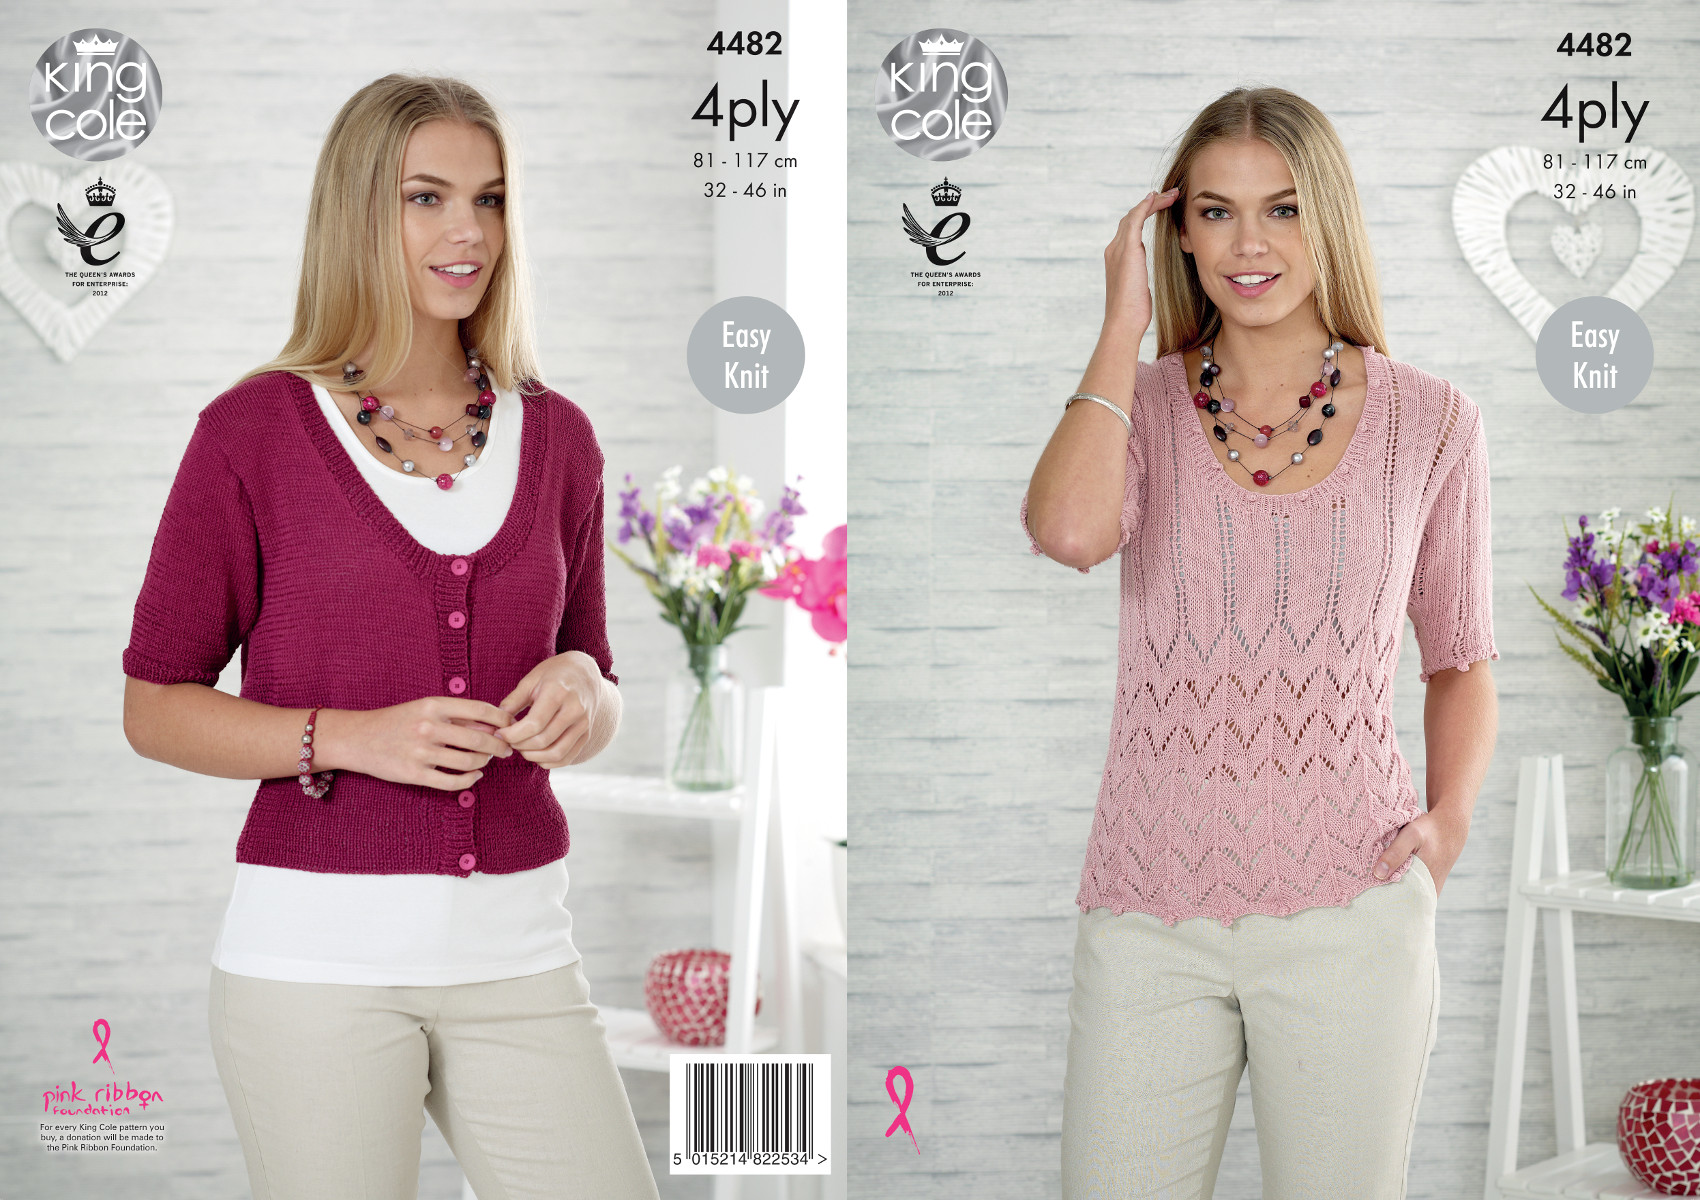 4 Ply Knitting Patterns Free Ladies : Womens Lace Top & Cardigan Knitting Pattern King Cole Ladies Easy Knit 4p...